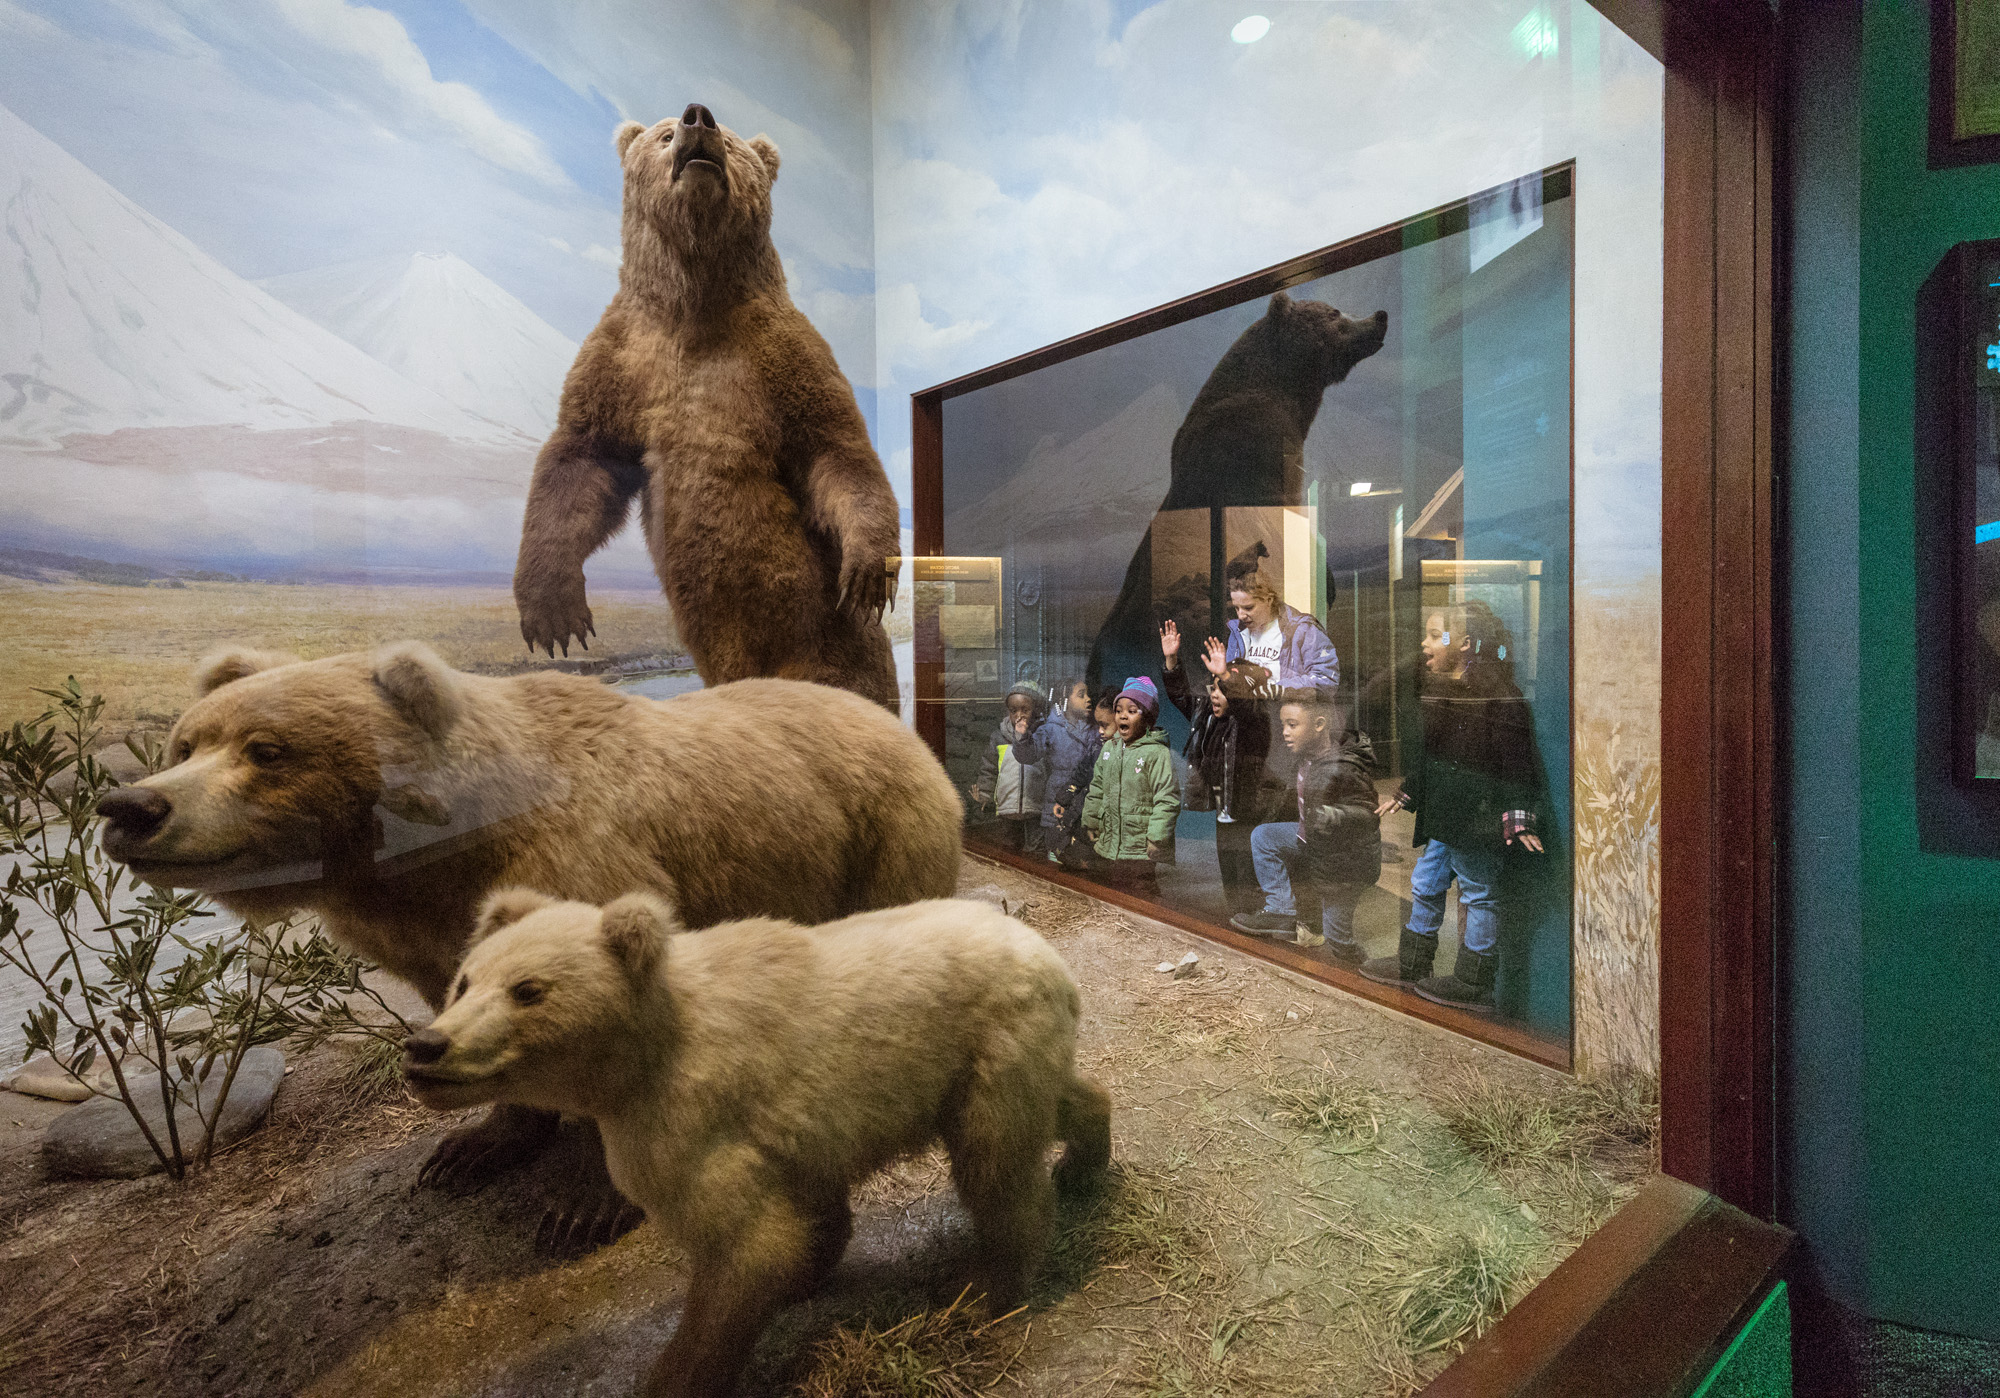 Students gather around a window to peer into a diorama featuring three bears in their natural habitat.